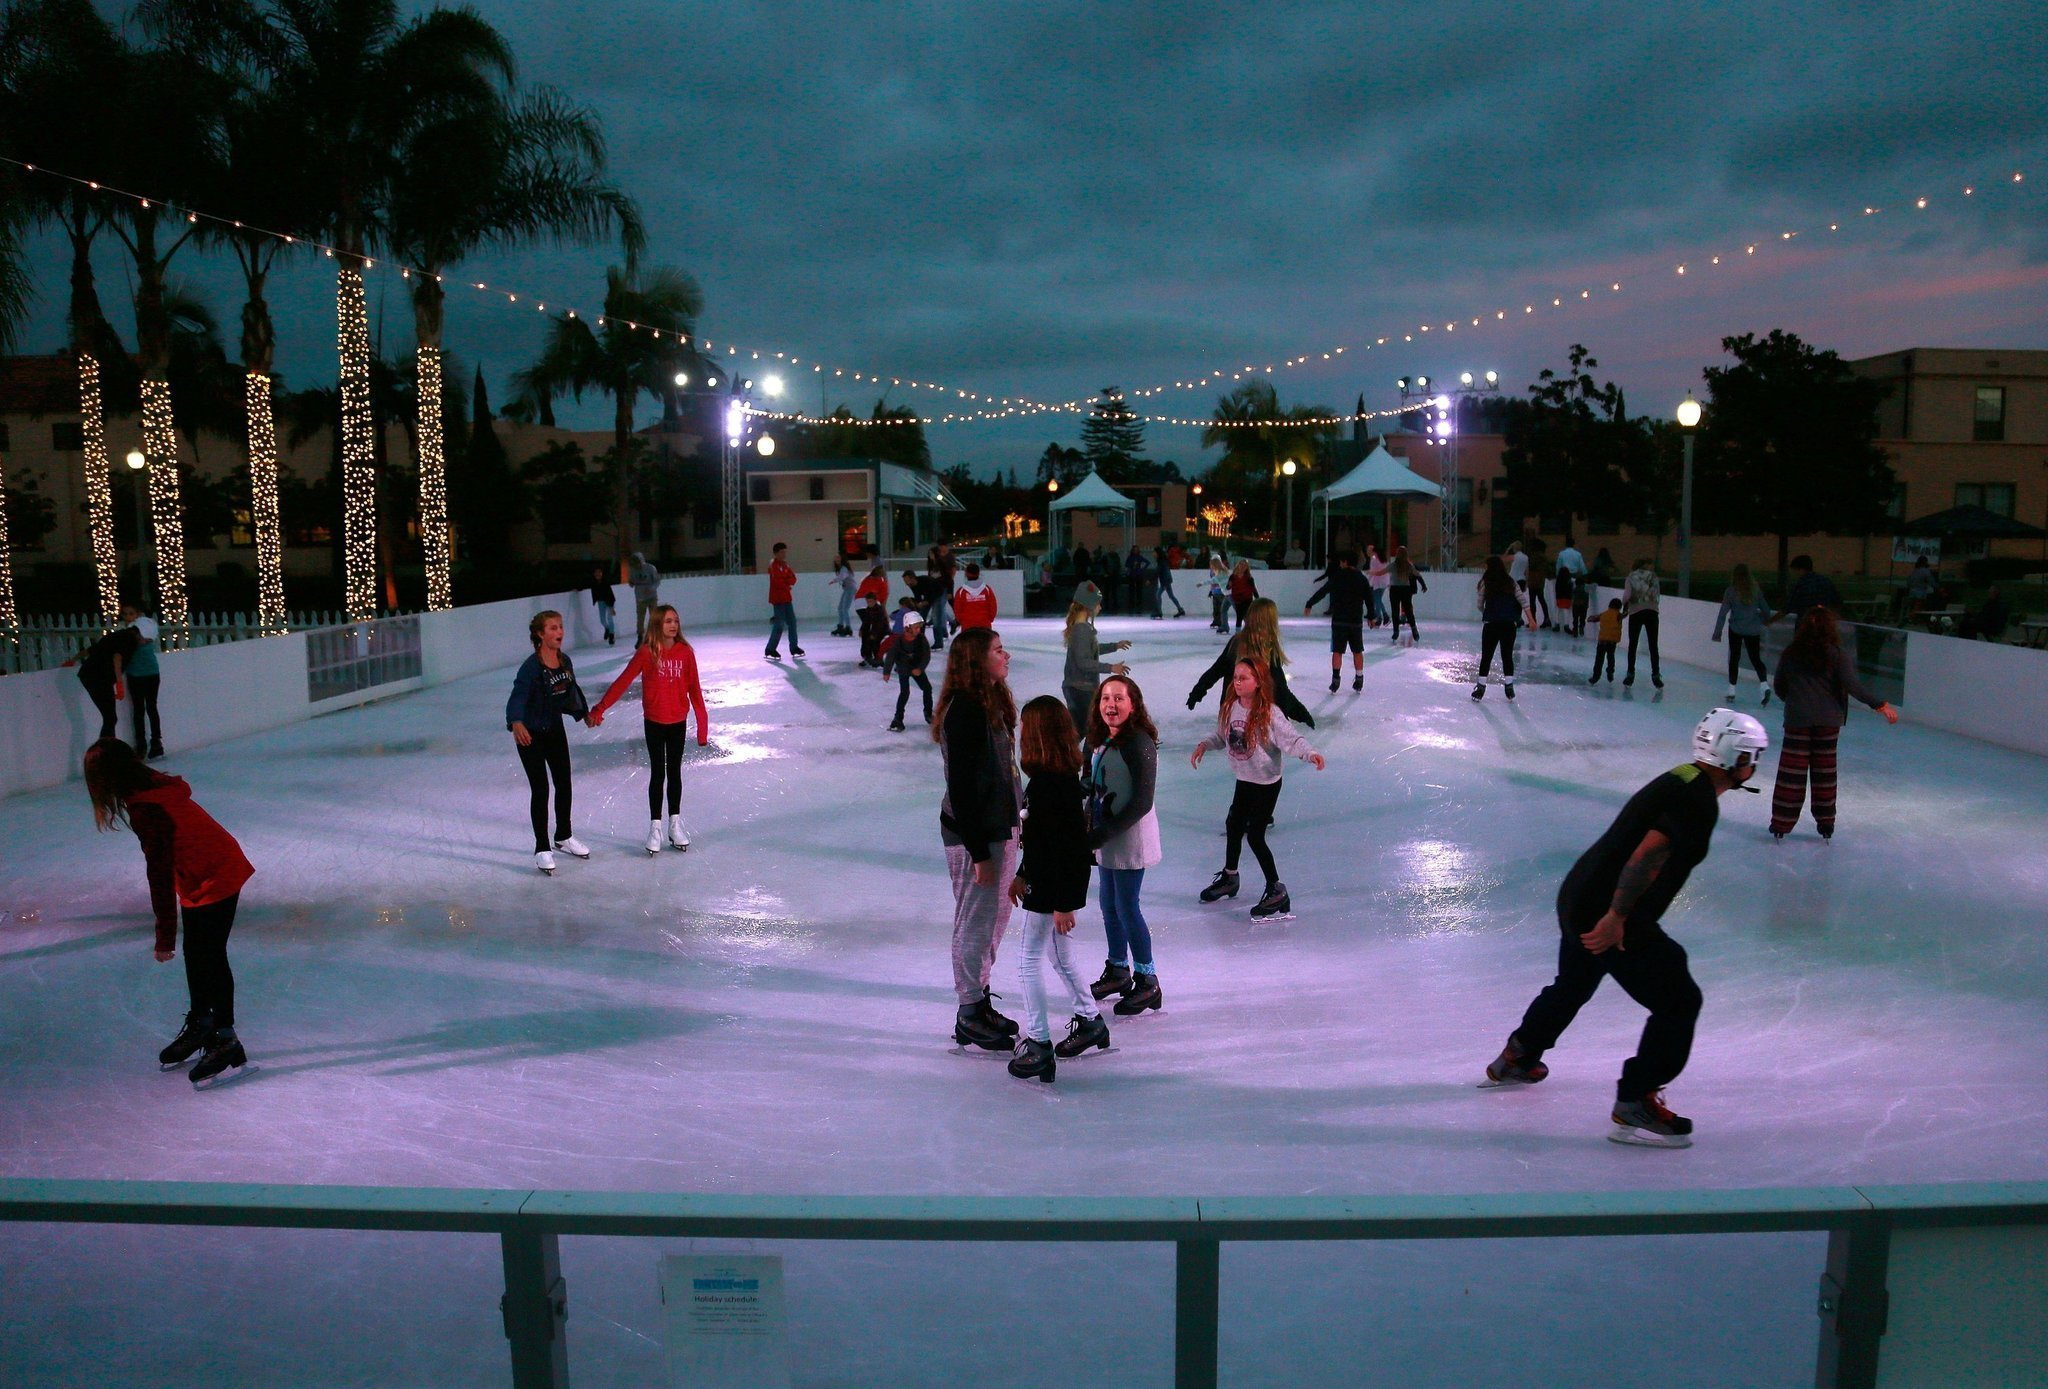 A Guide To San Diego U2019s Outdoor Ice-skating Rinks